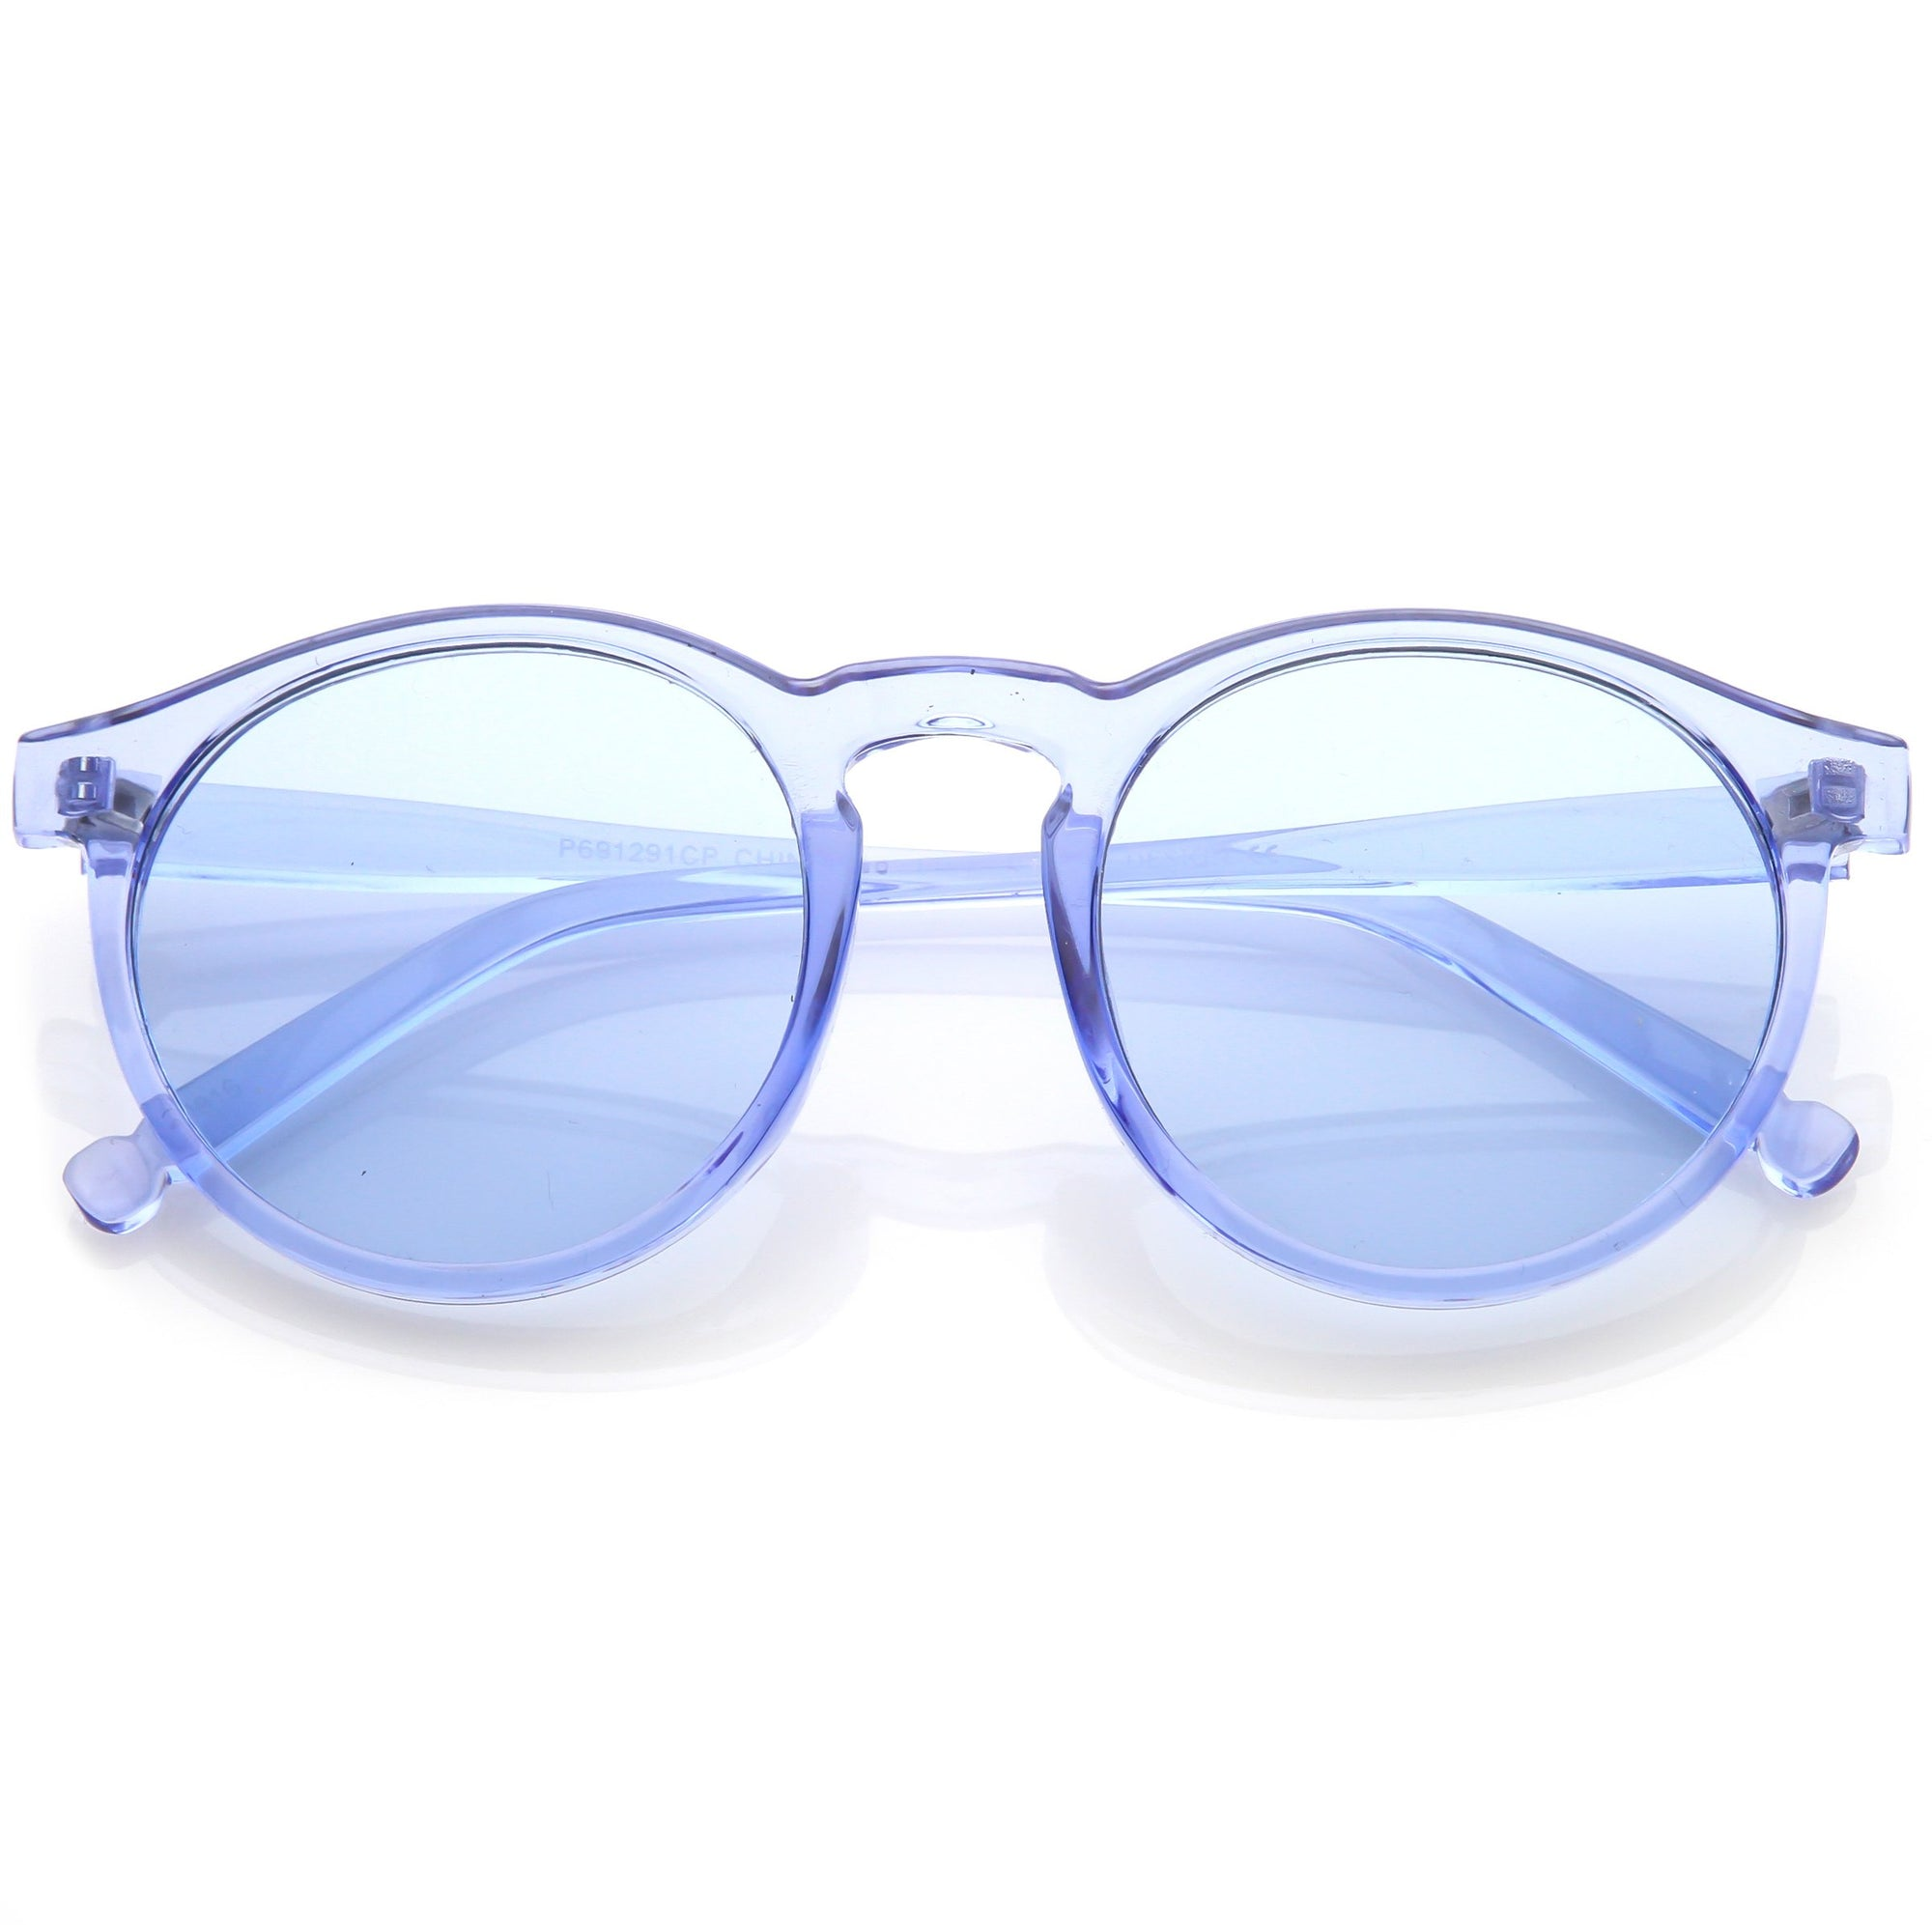 61f20c5b8afb8 Round Festival Party Translucent Pantone Tinted Lens Sunglasses - zeroUV